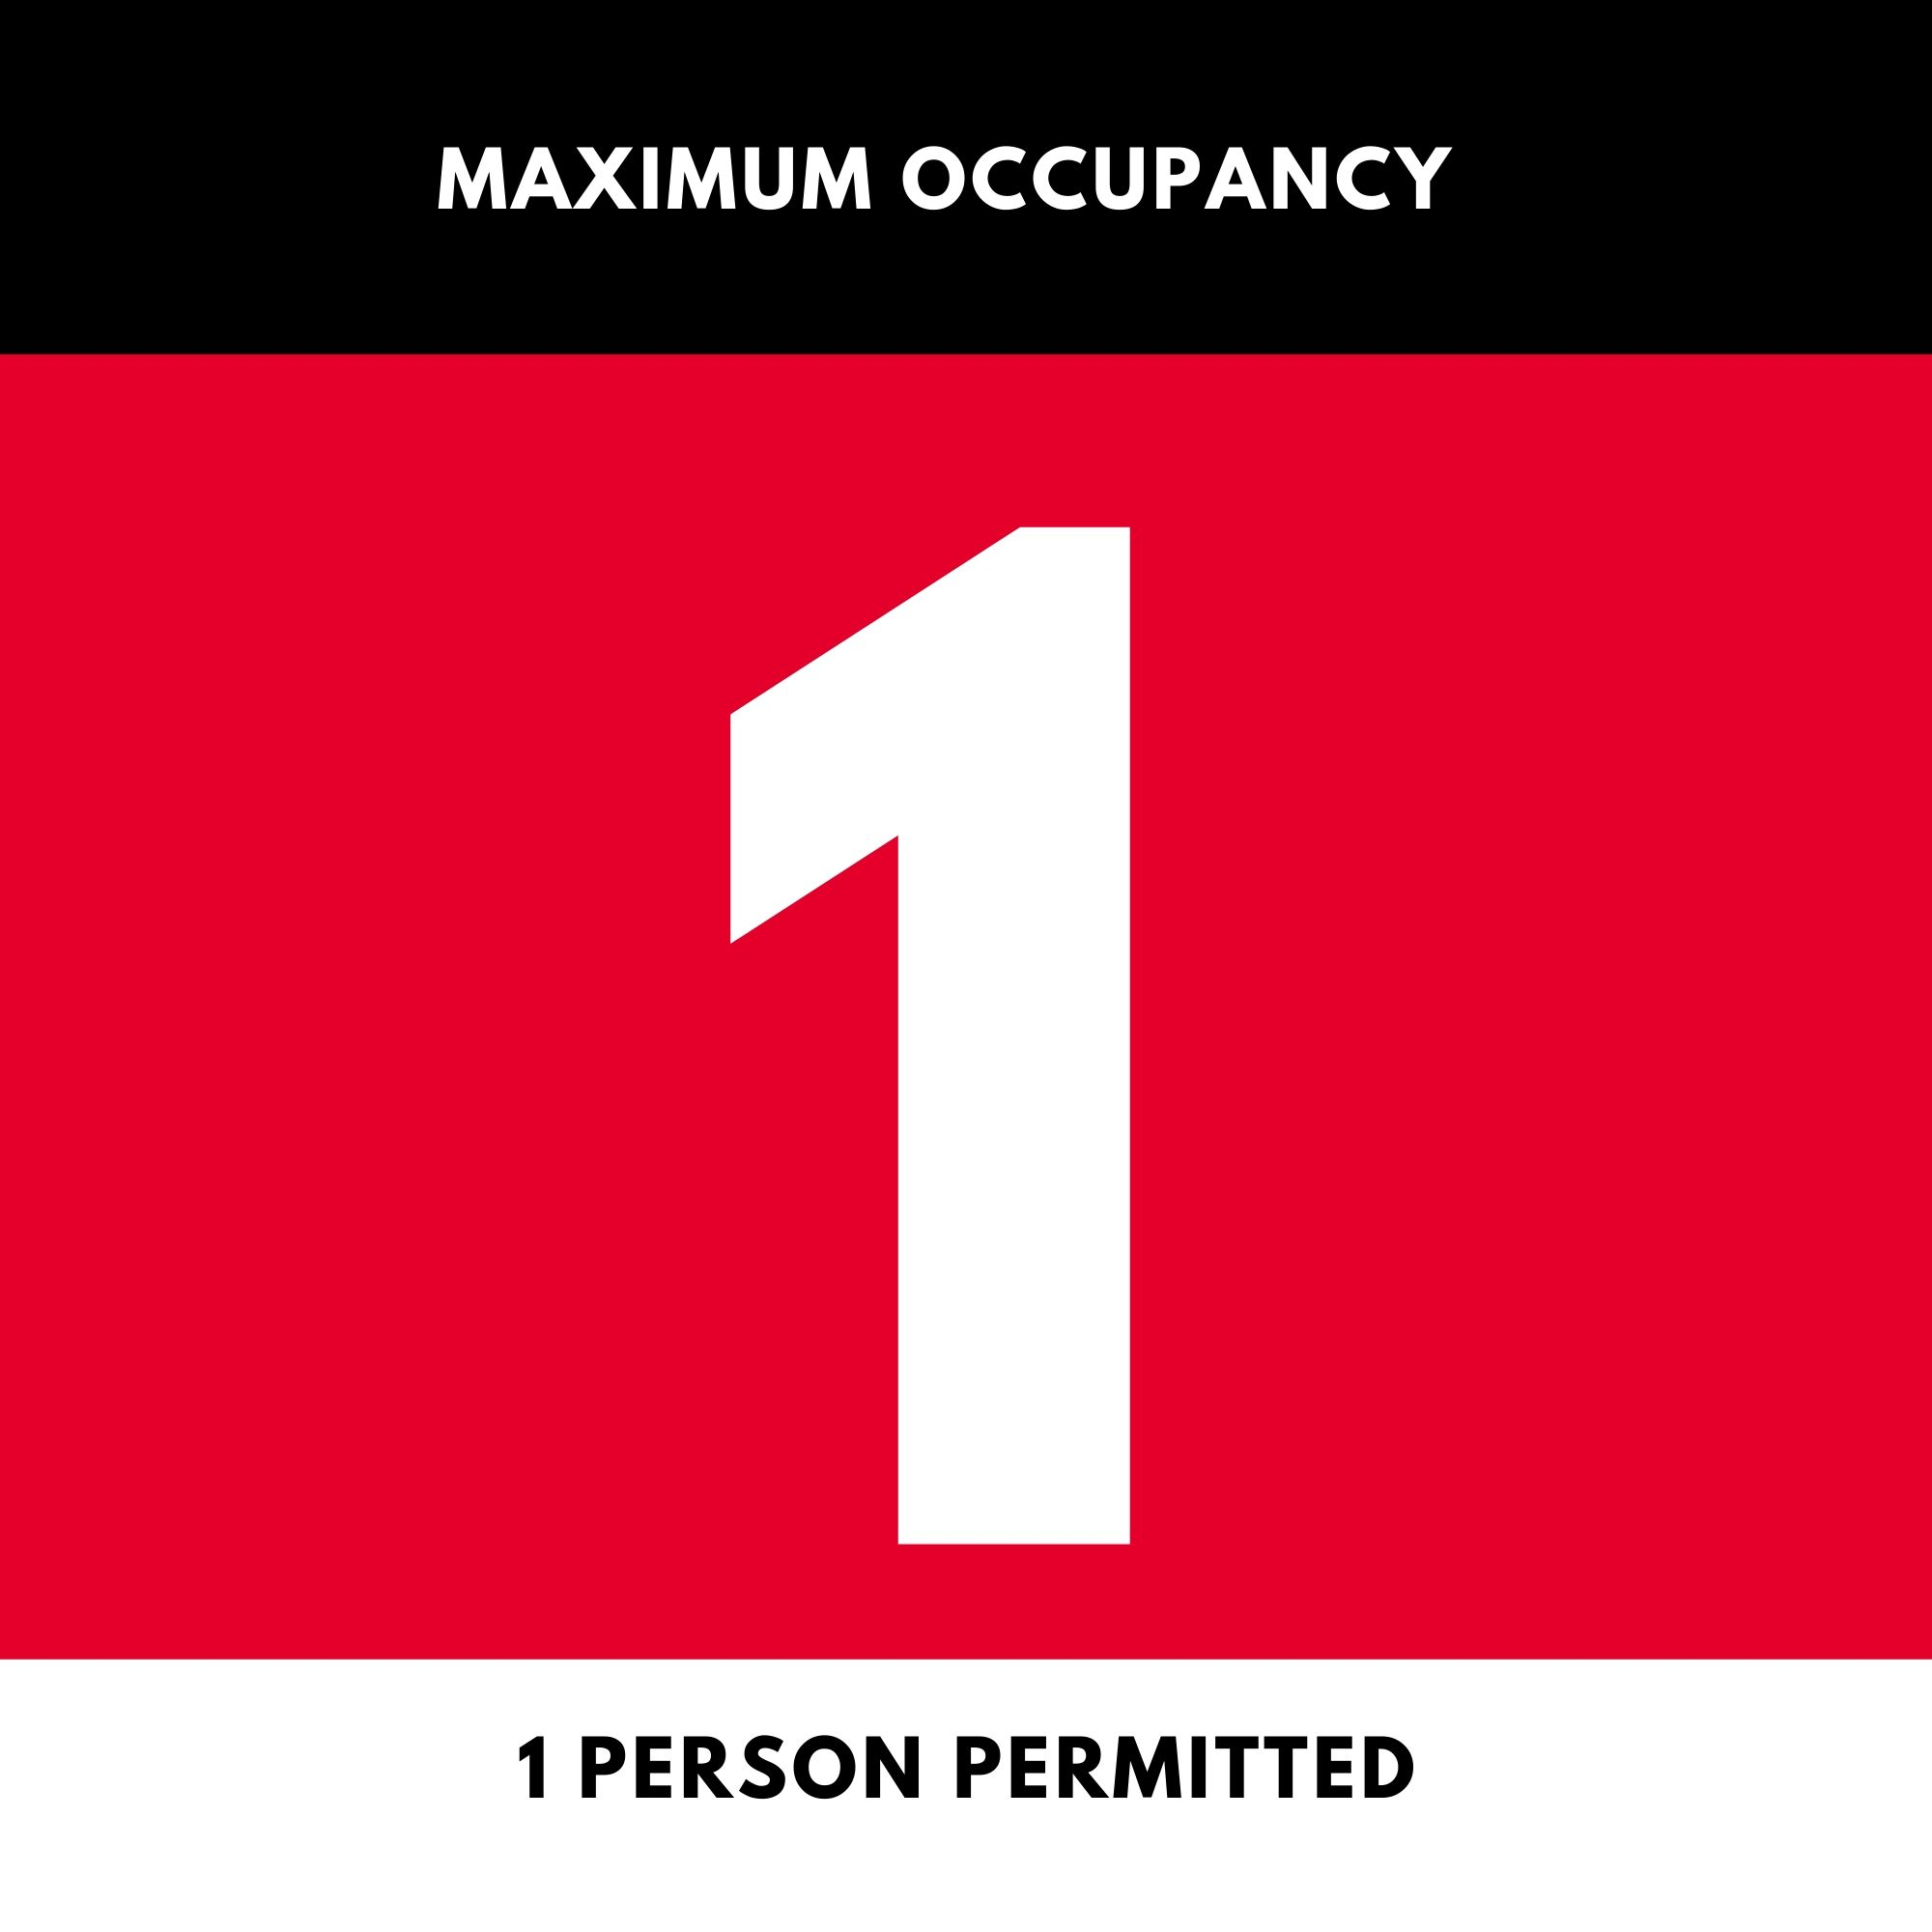 Maximum Room Occupancy Signs - Removable Sticker